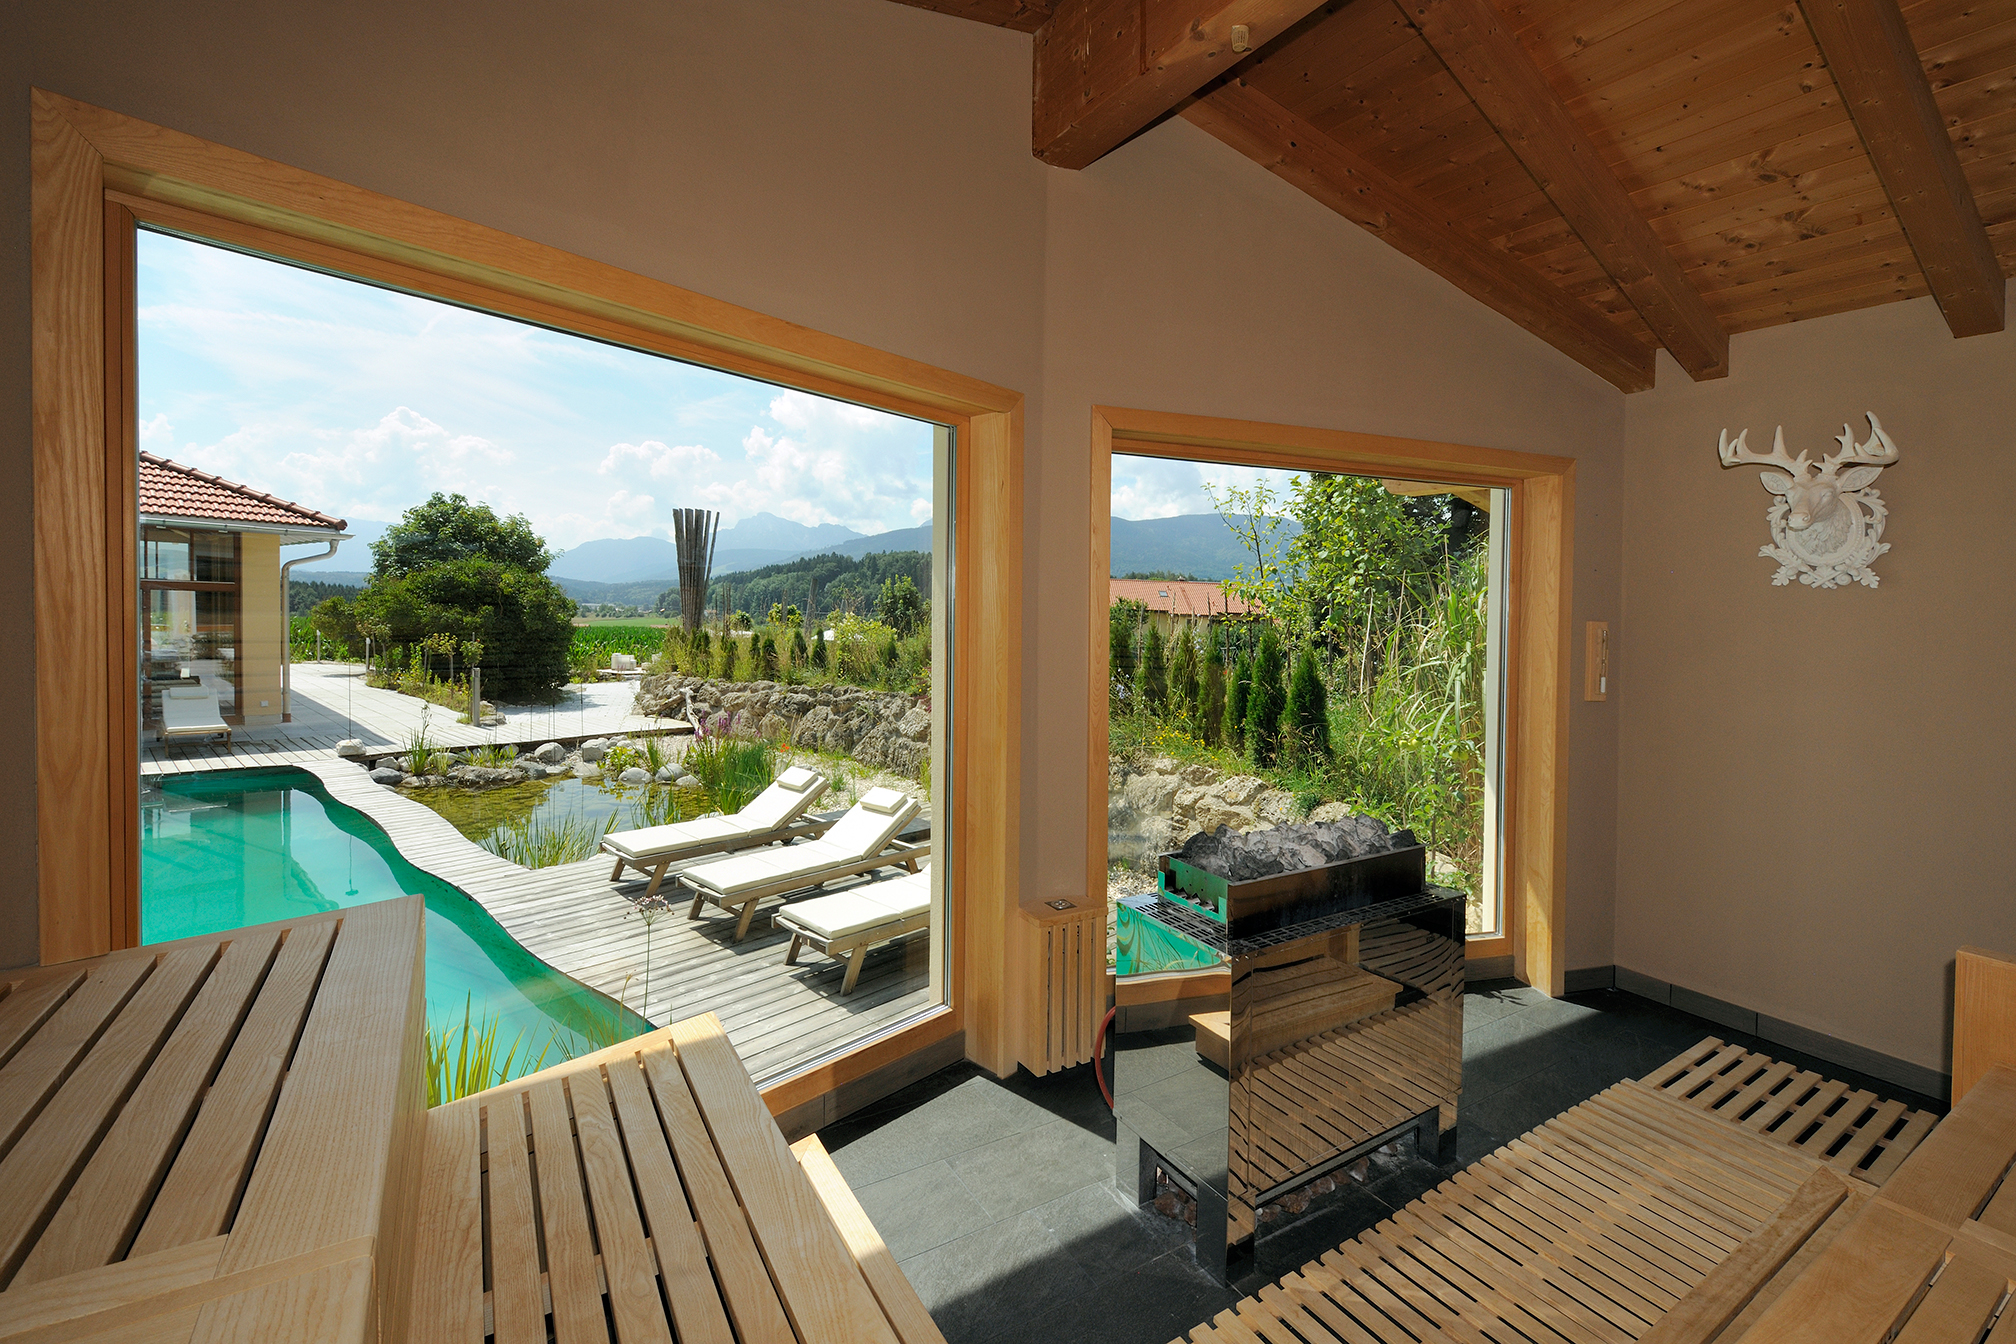 sauna_mit_blick_auf_den_outdoorpool_wellnessnaturresort_gut_edermann